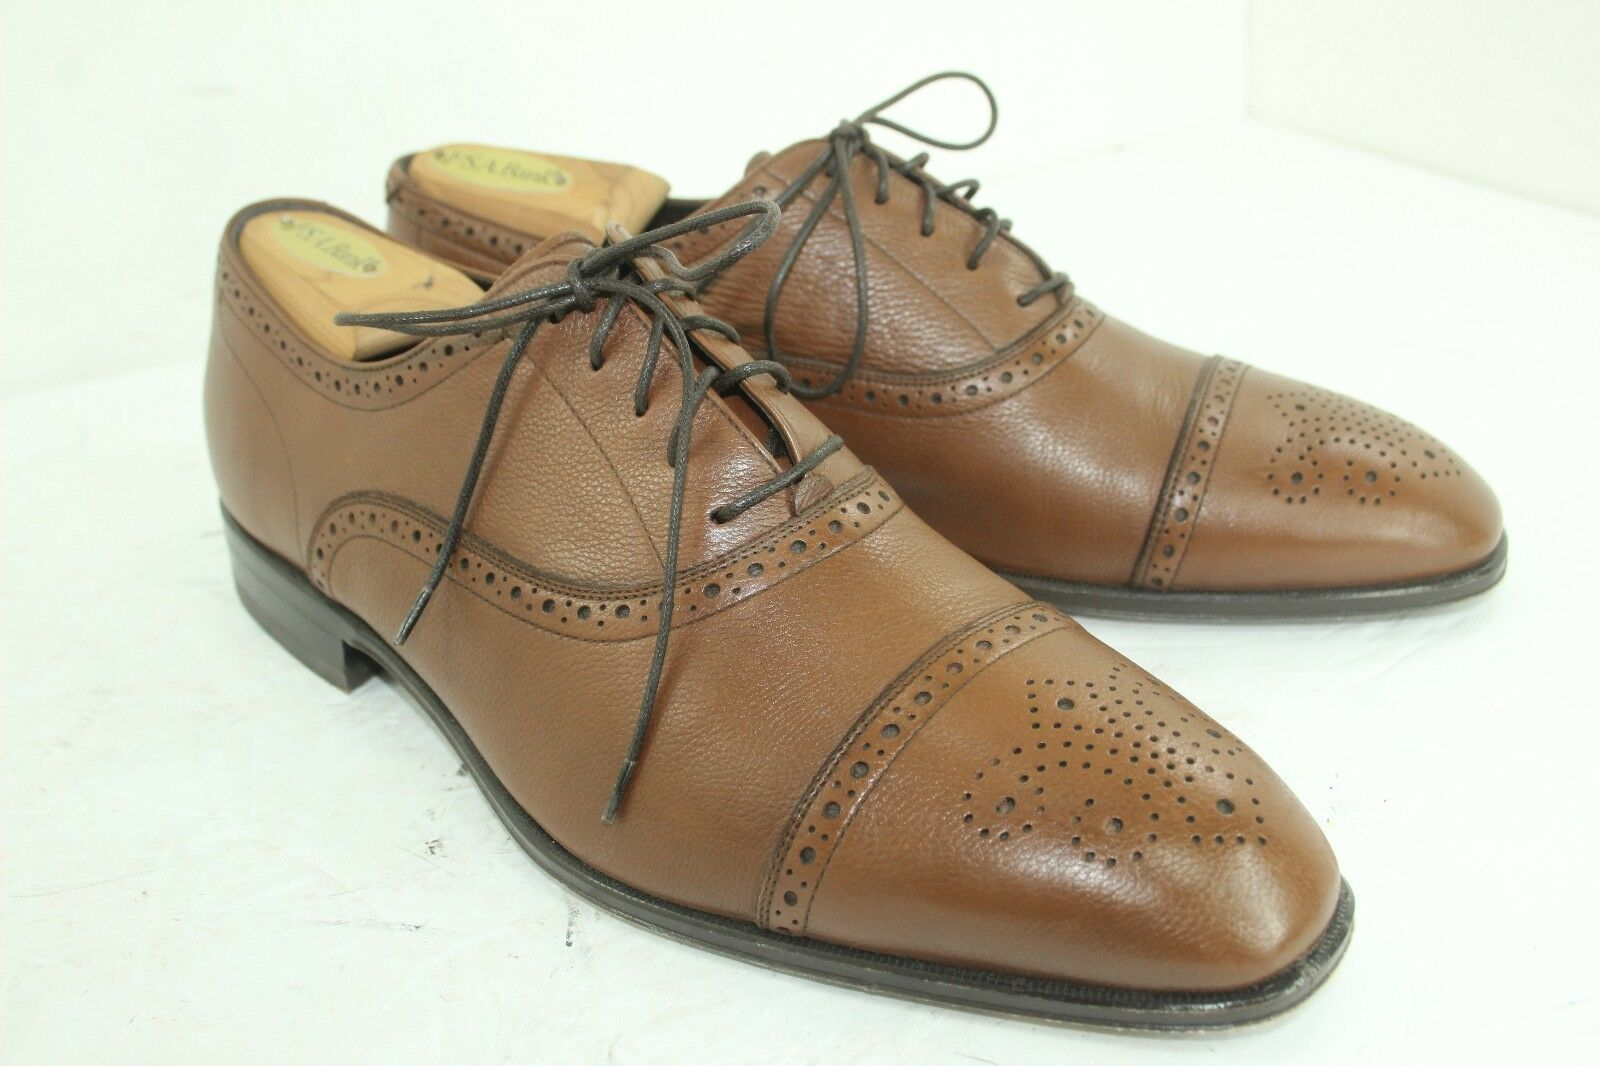 MONTE ROSSO  SCARPE MADE IN ITALY SIZE 10.5 M LEATHER IN GREAT CONDITION BROWNS